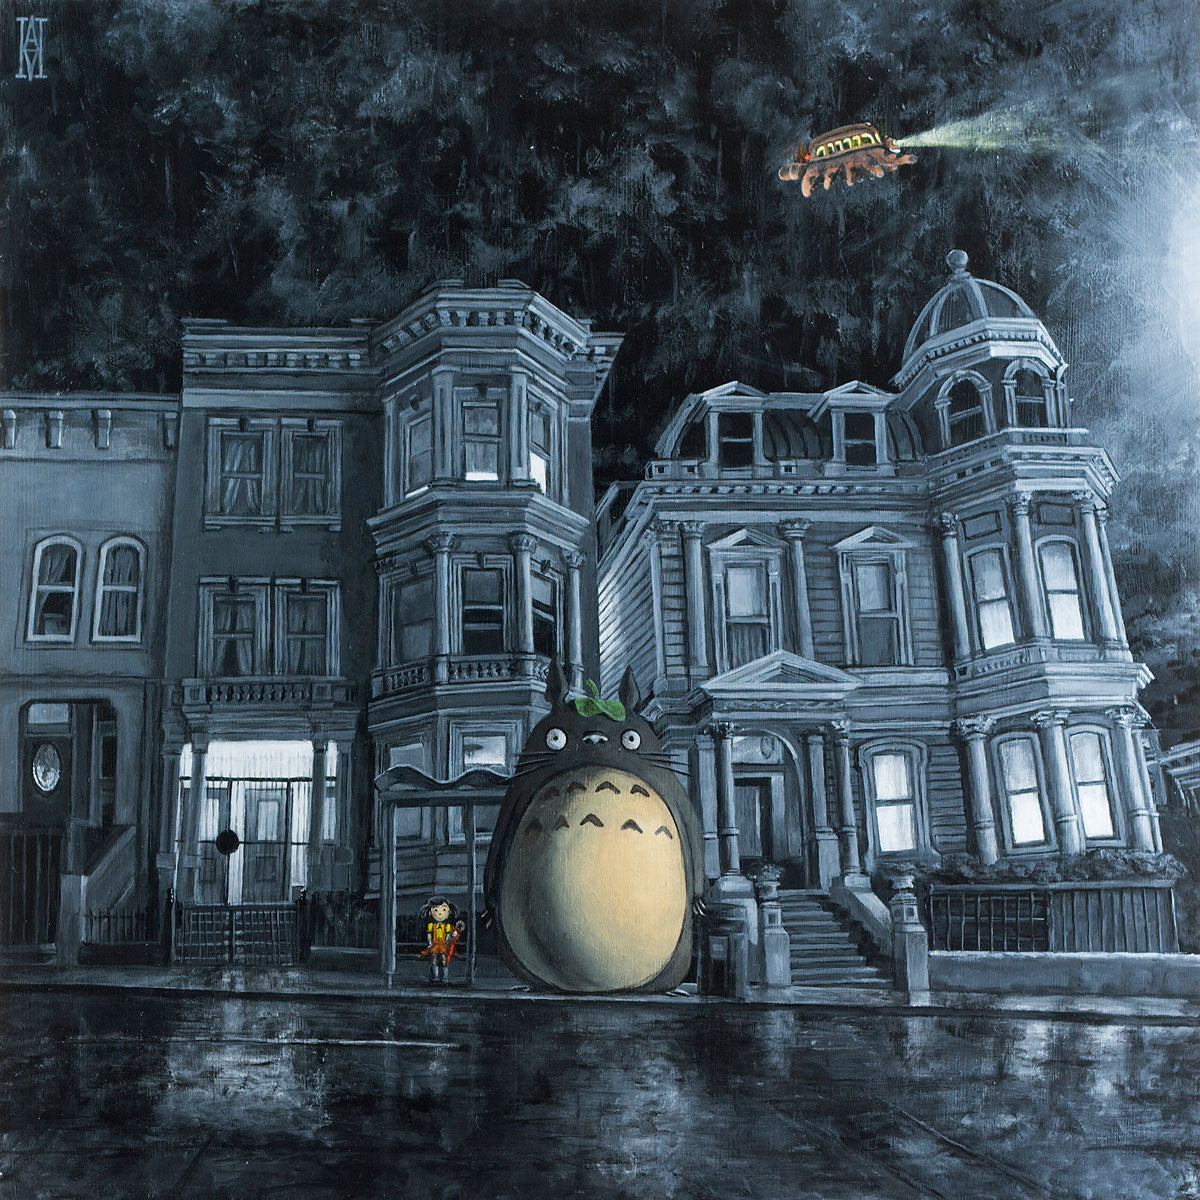 Waiting for the Catbus (My Neighbor Totoro)